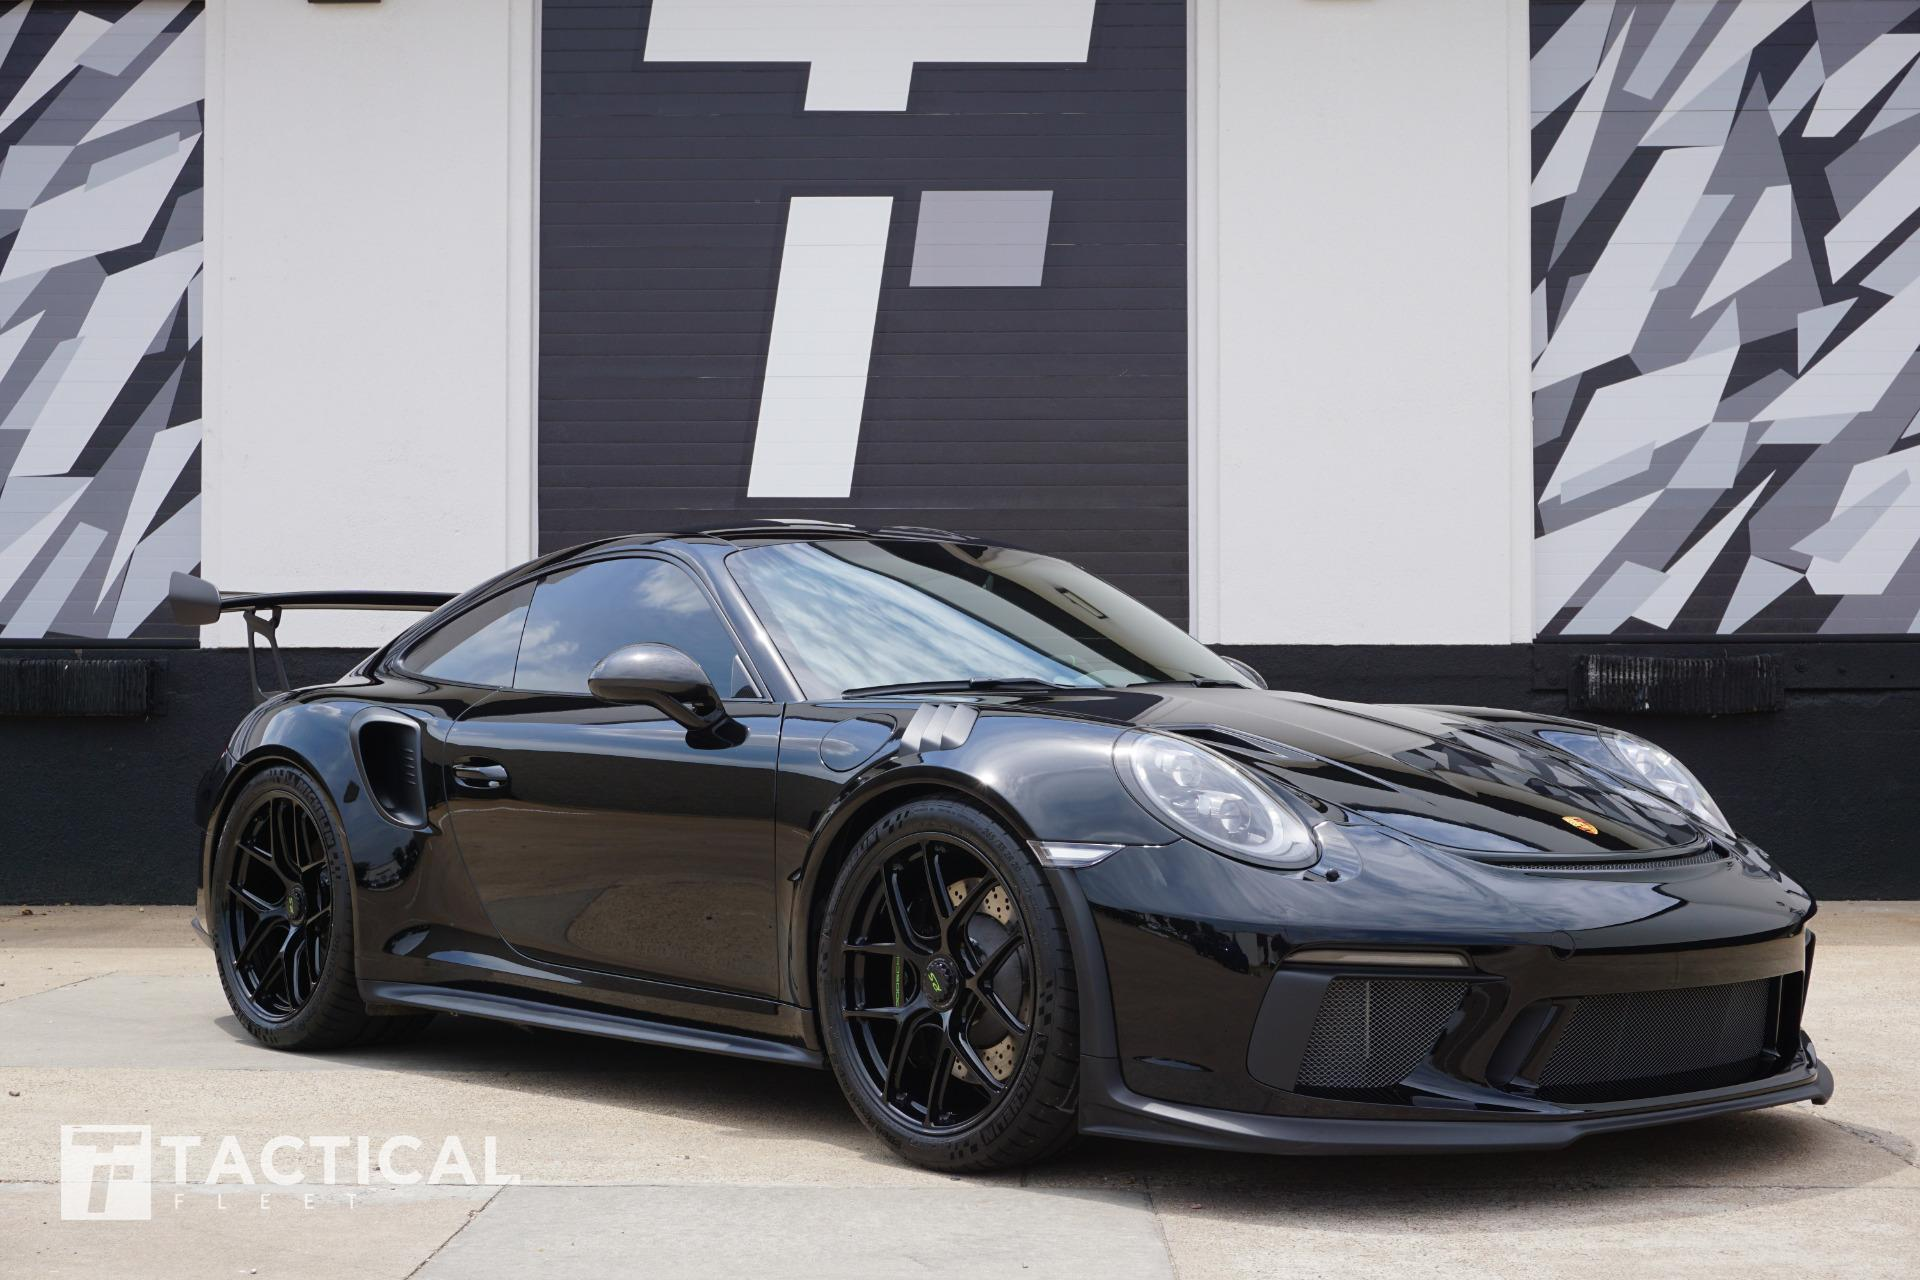 Used 2019 Porsche 911 Gt3 Rs For Sale 215 900 Tactical Fleet Stock Tf1364